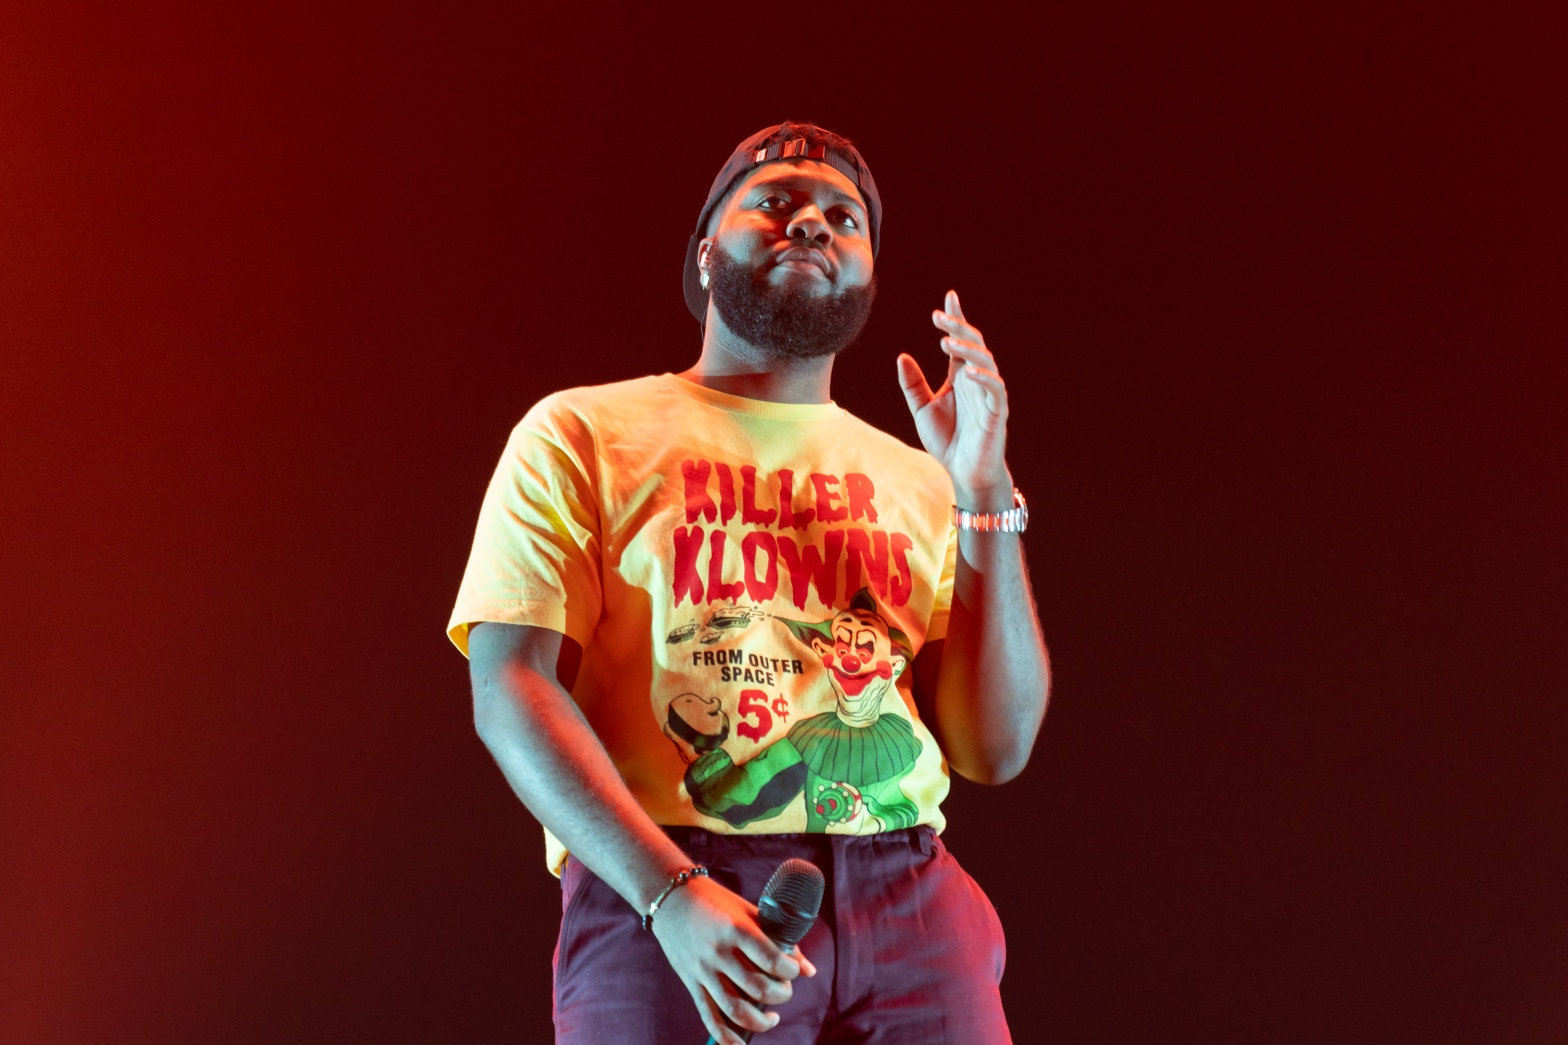 This is a photo of Khalid Robinson performing at Madison Square Garden on July 31, 2019 during his Free Spirit Tour.